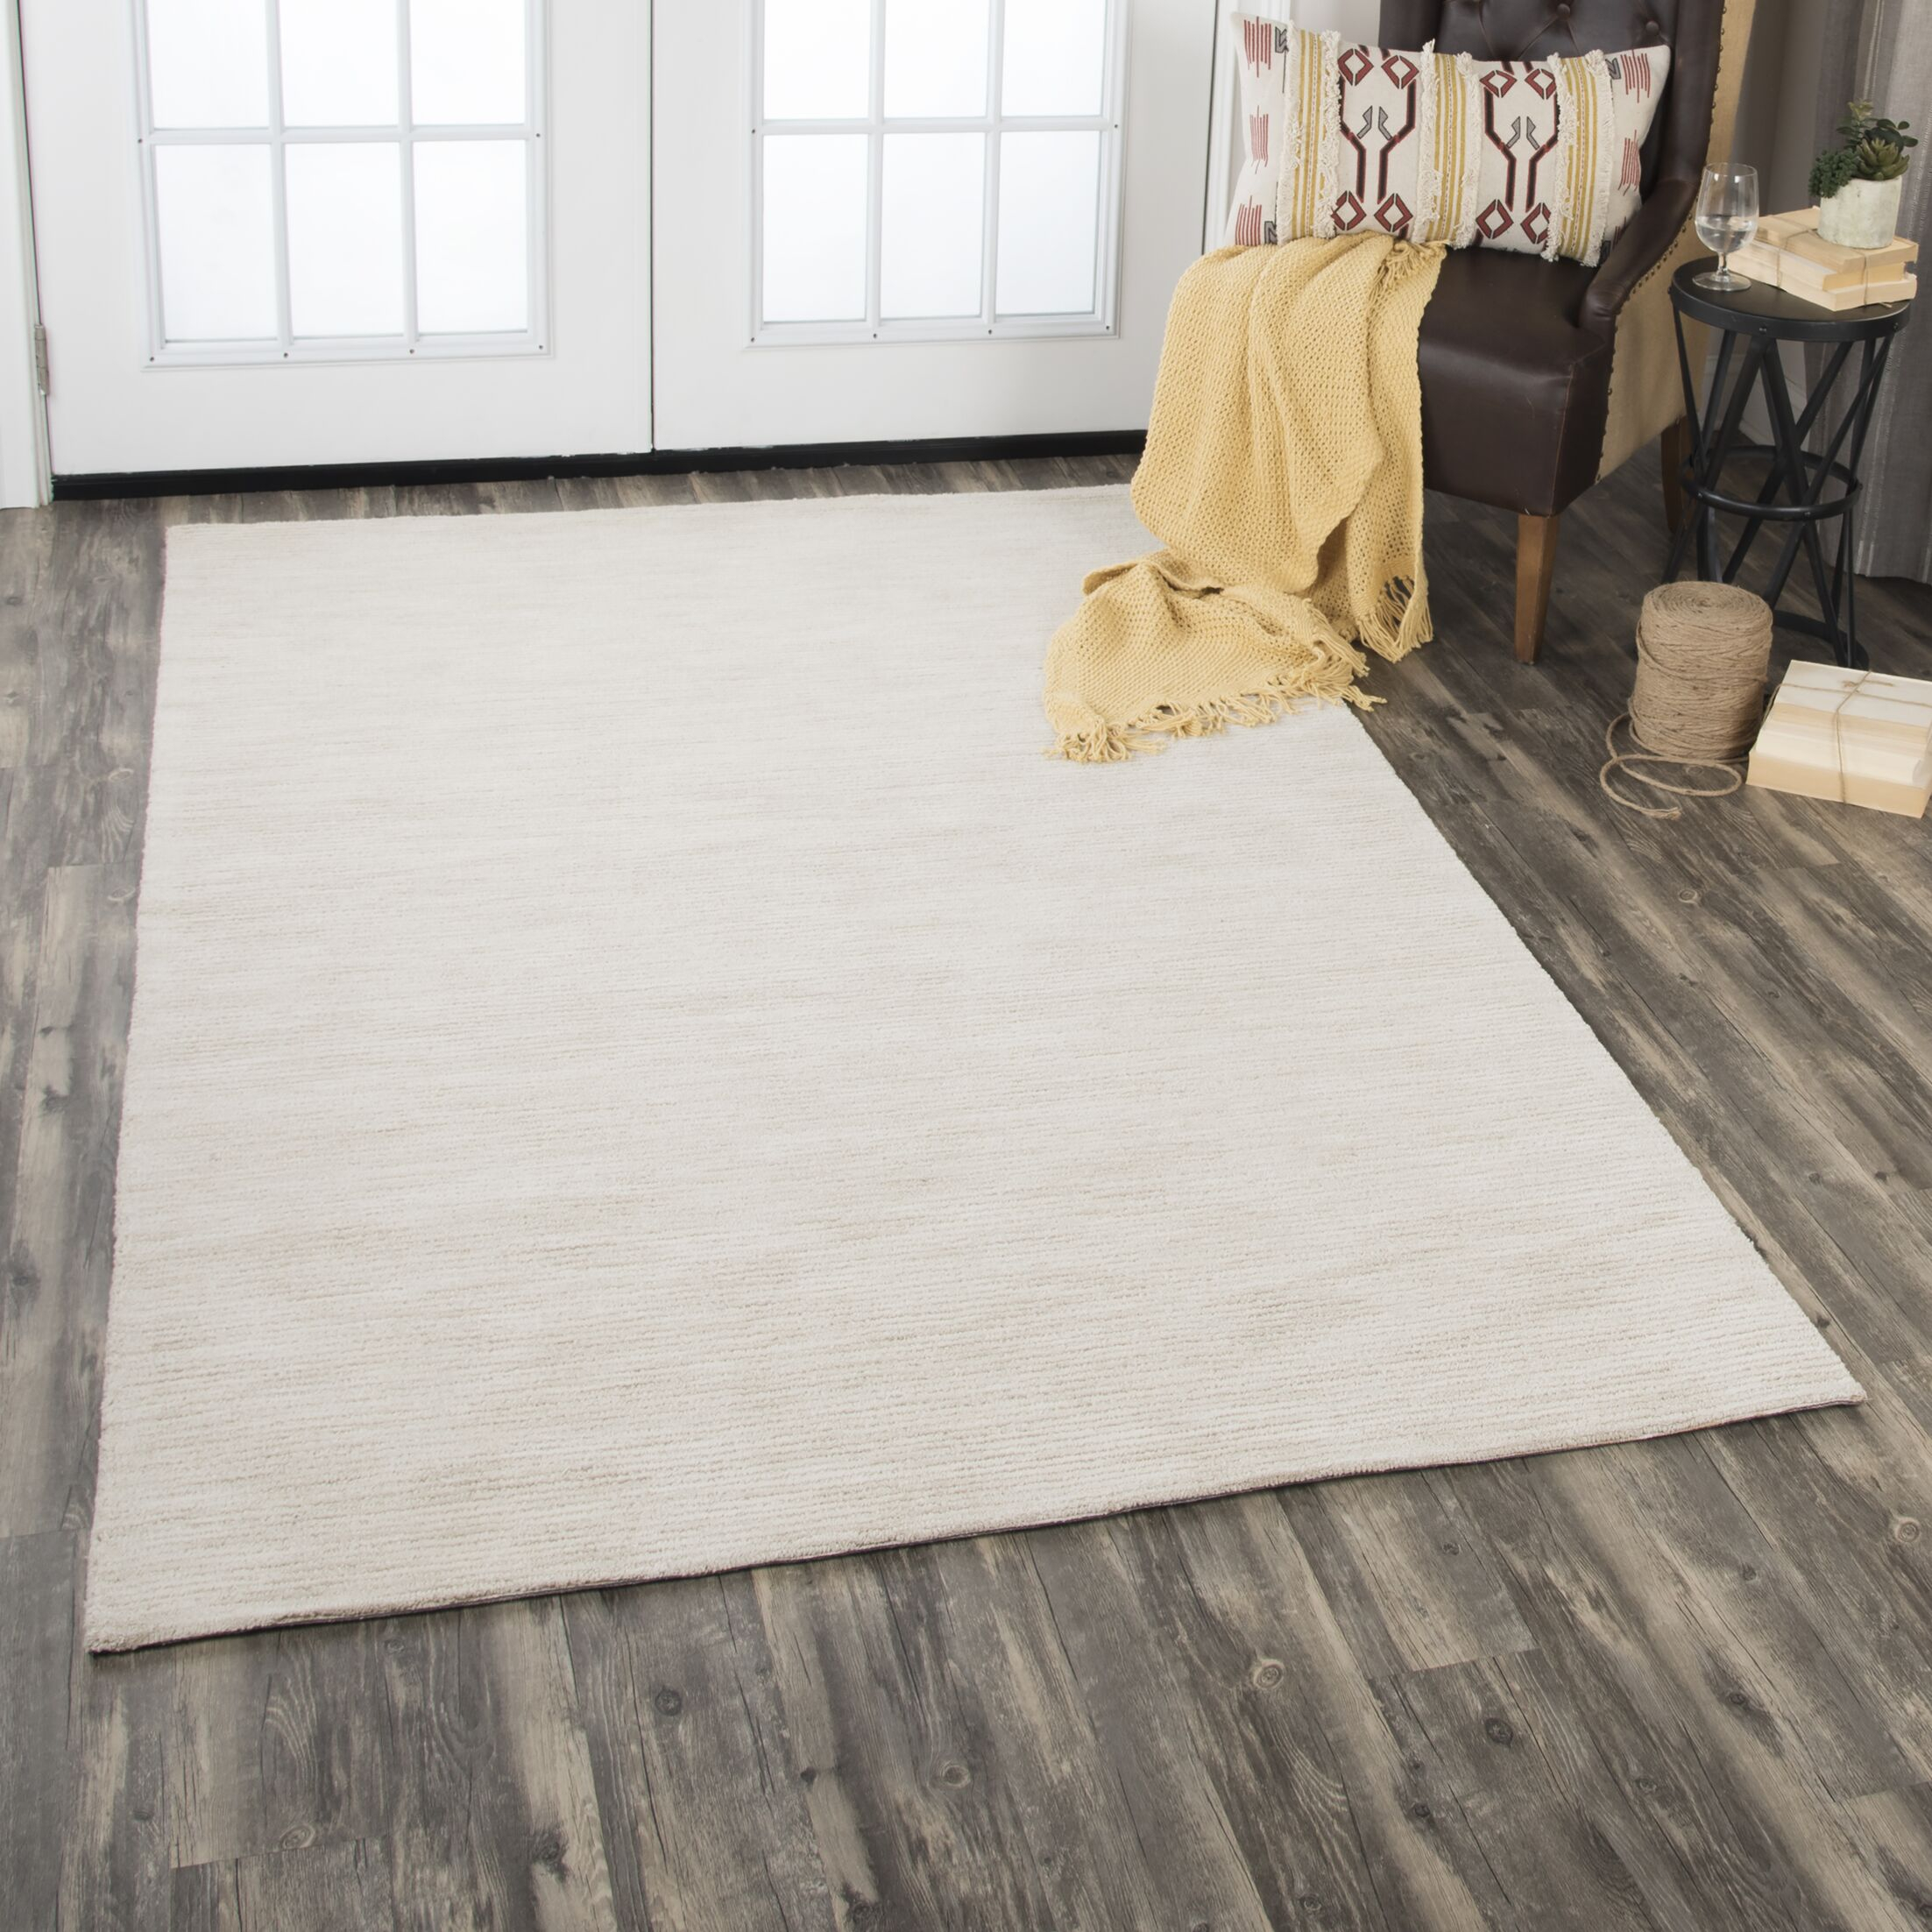 Etheredge Hand-Tufted Wool Beige Area Rug Rug Size: Rectangle 5' x 8'